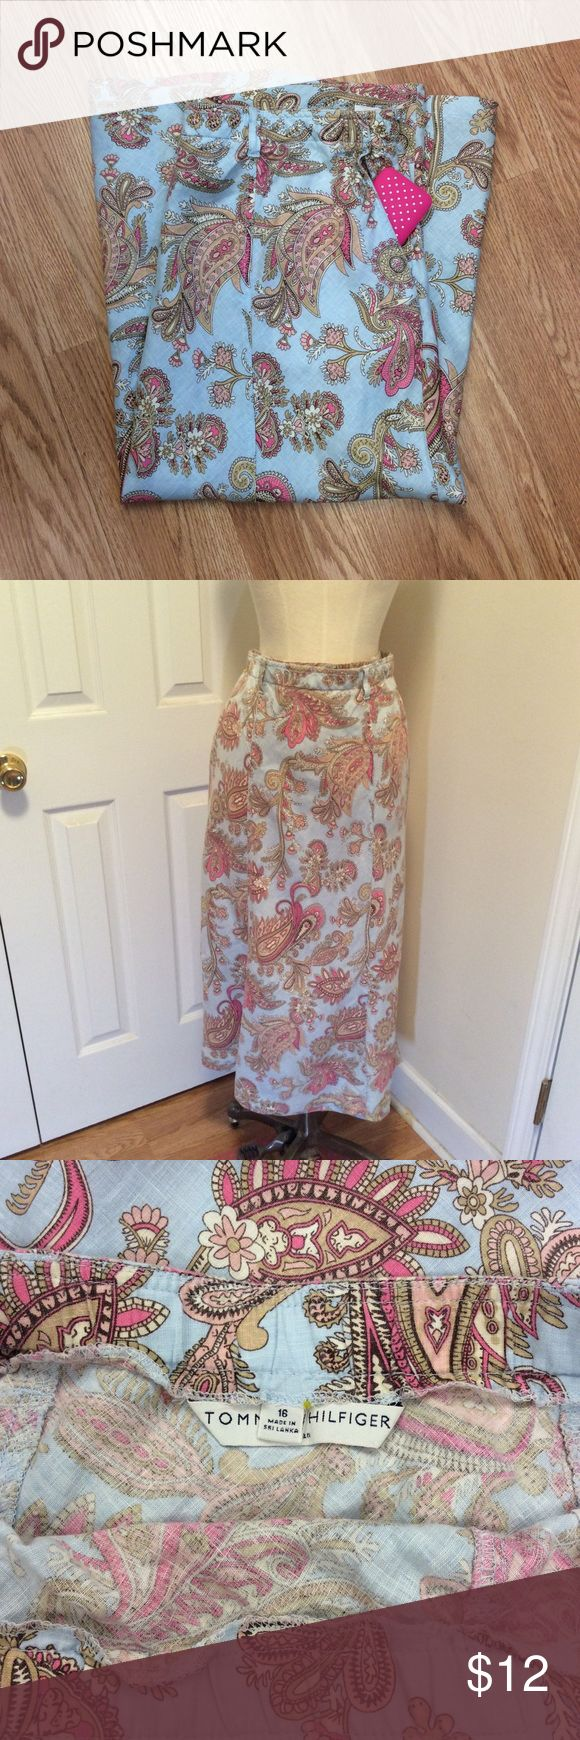 🎉🎉HP🎉🎉Tommy Hilfiger blue & pink skirt size 16 Tommy Hilfiger blue and pink skirt, size 16.  Has side zipper, 2 side pockets and belt loops. Skirt is 34 3/4 inches long.  Questions???  Please ask. Tommy Hilfiger Skirts Maxi